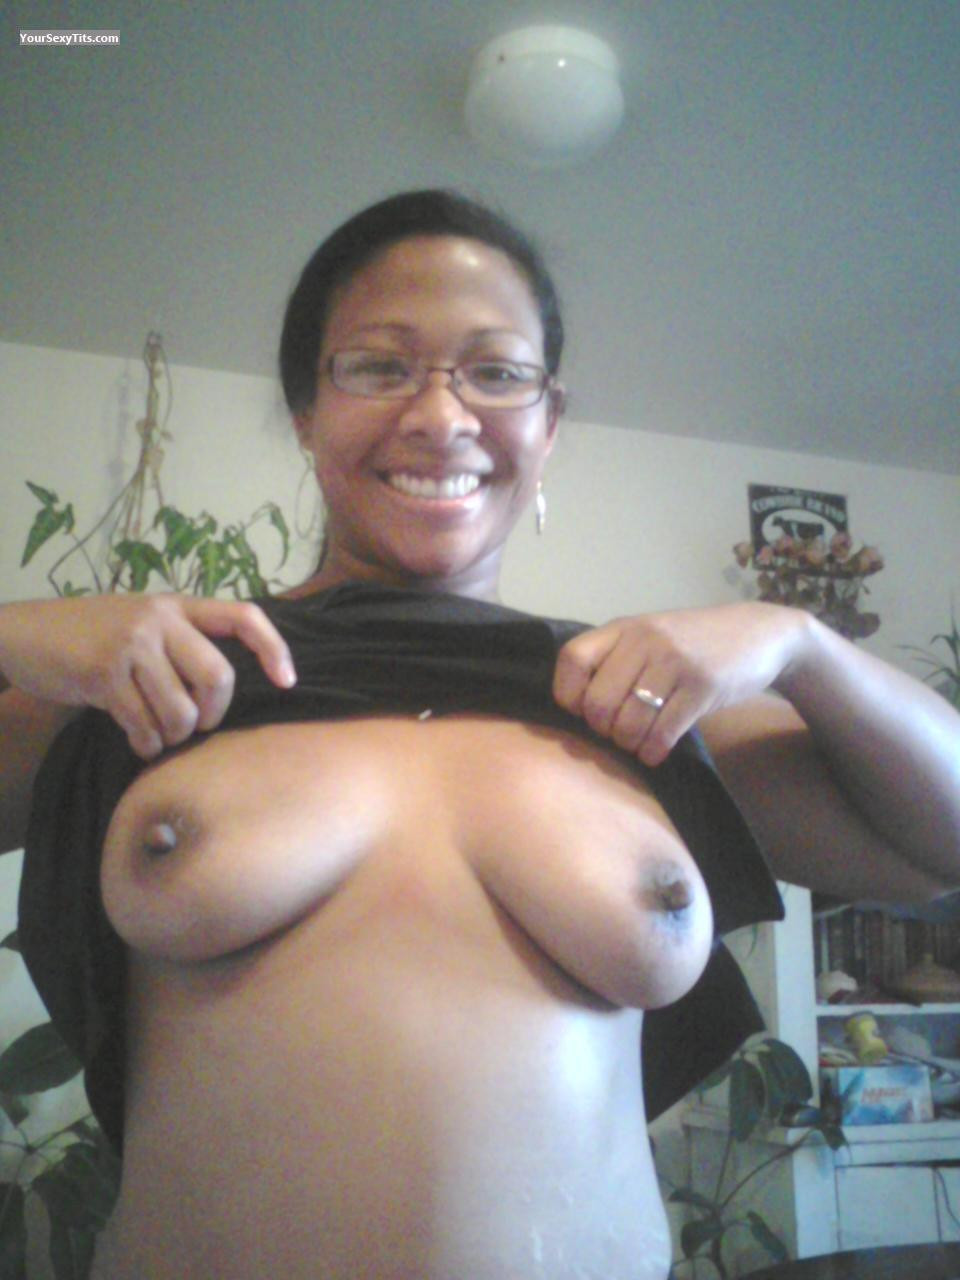 Tit Flash: Medium Tits - Topless Bunbun from United States